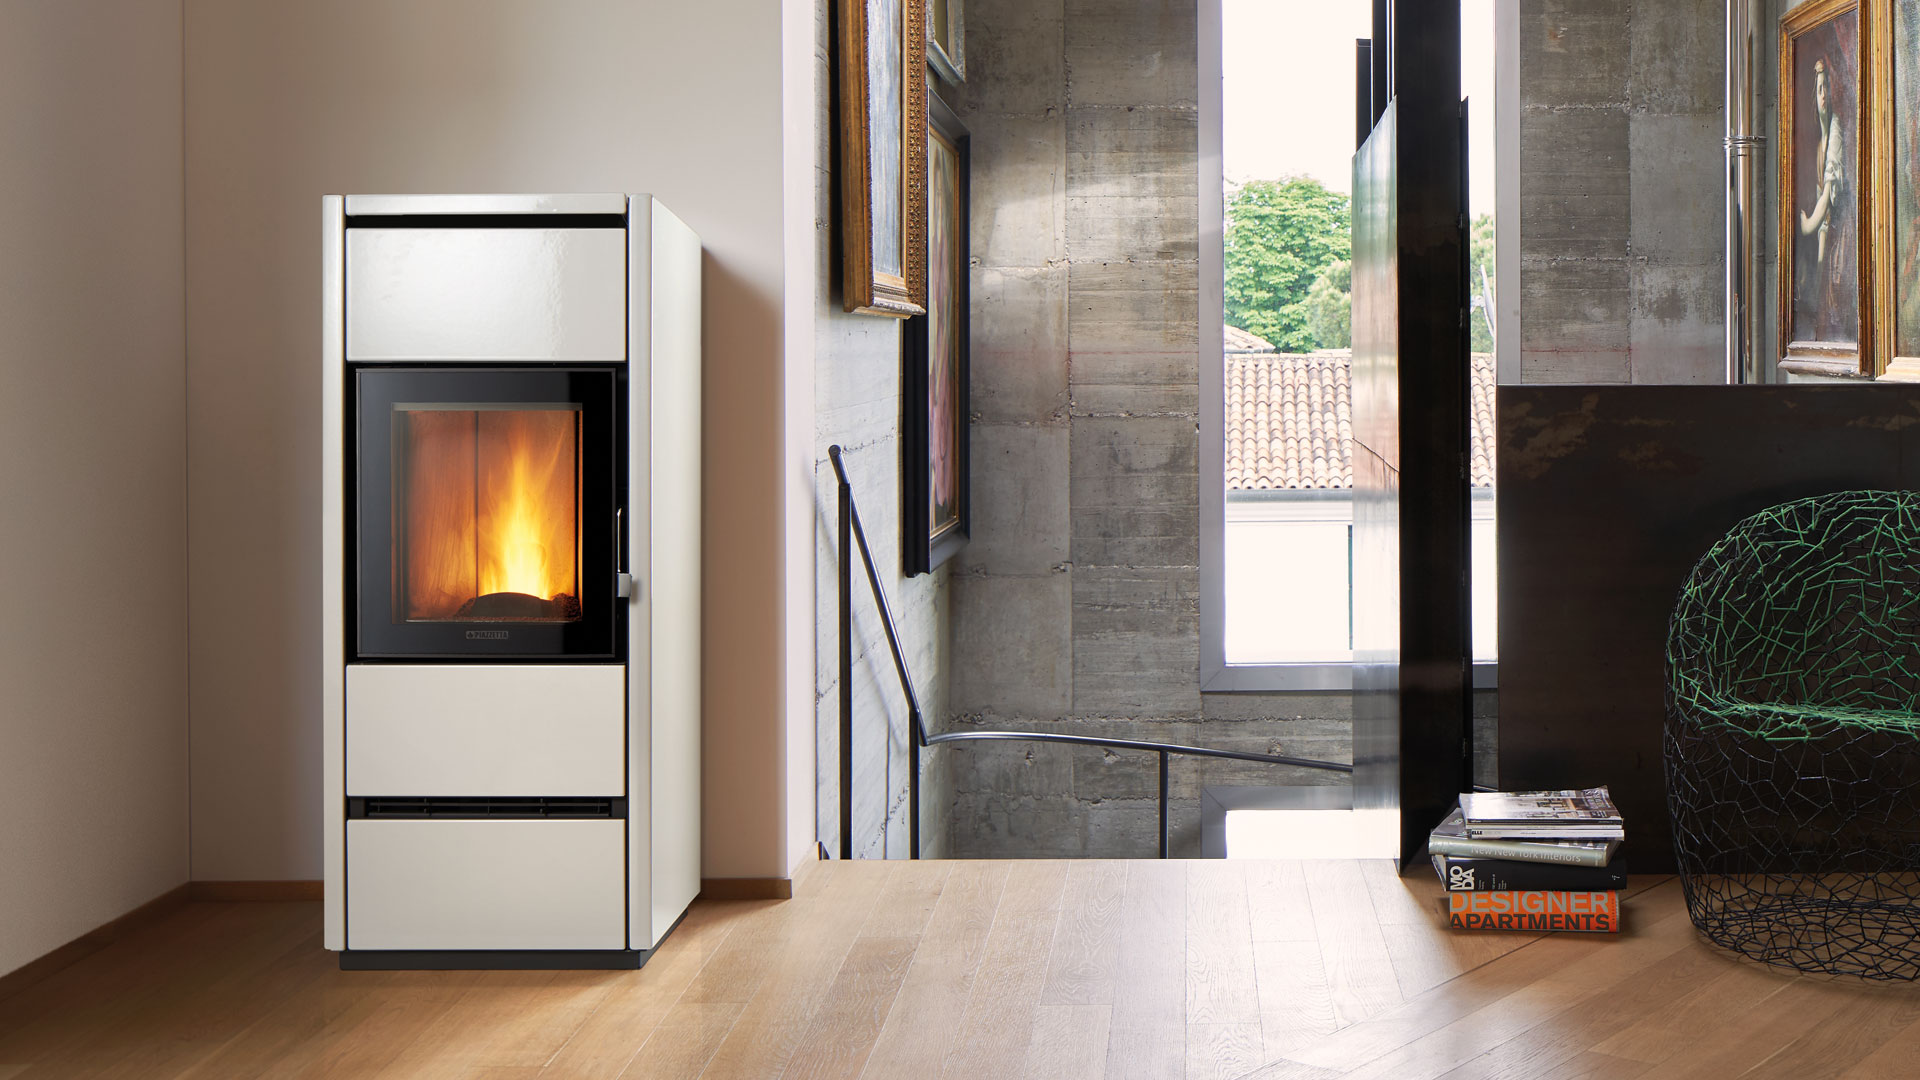 Rivenditori Stufe A Pellet Arezzo fireplaces and stoves | piazzetta